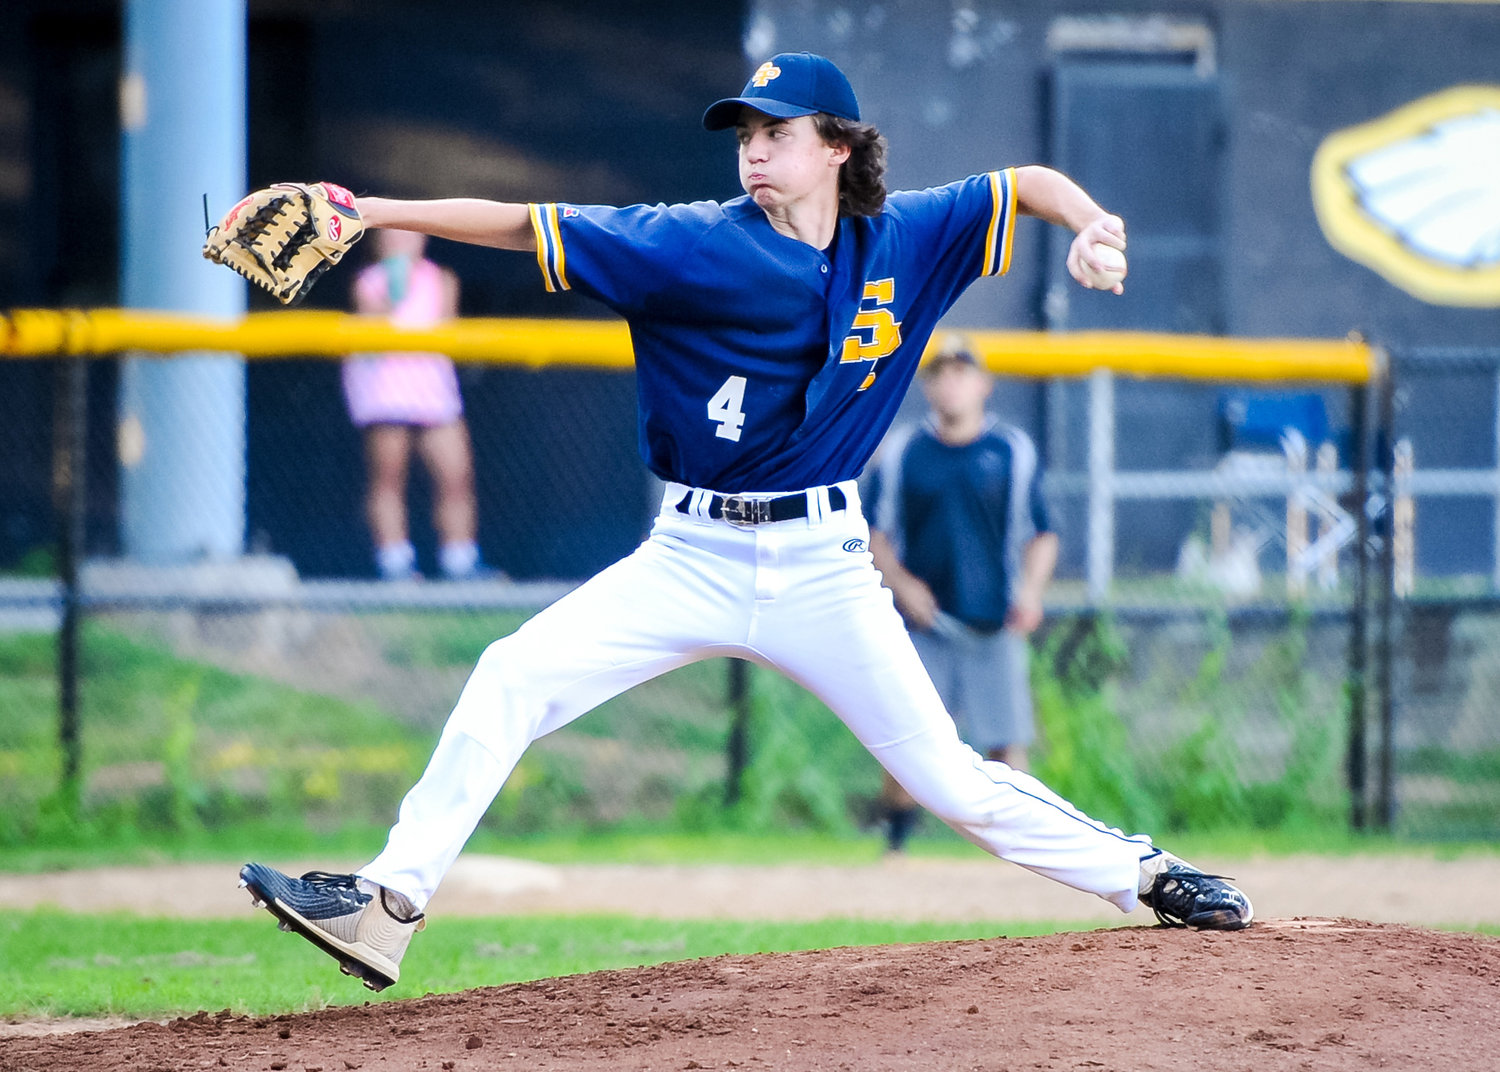 A dual threat, Michael Bowles led the 16U Severn Panthers in innings pitched and batting average this summer.